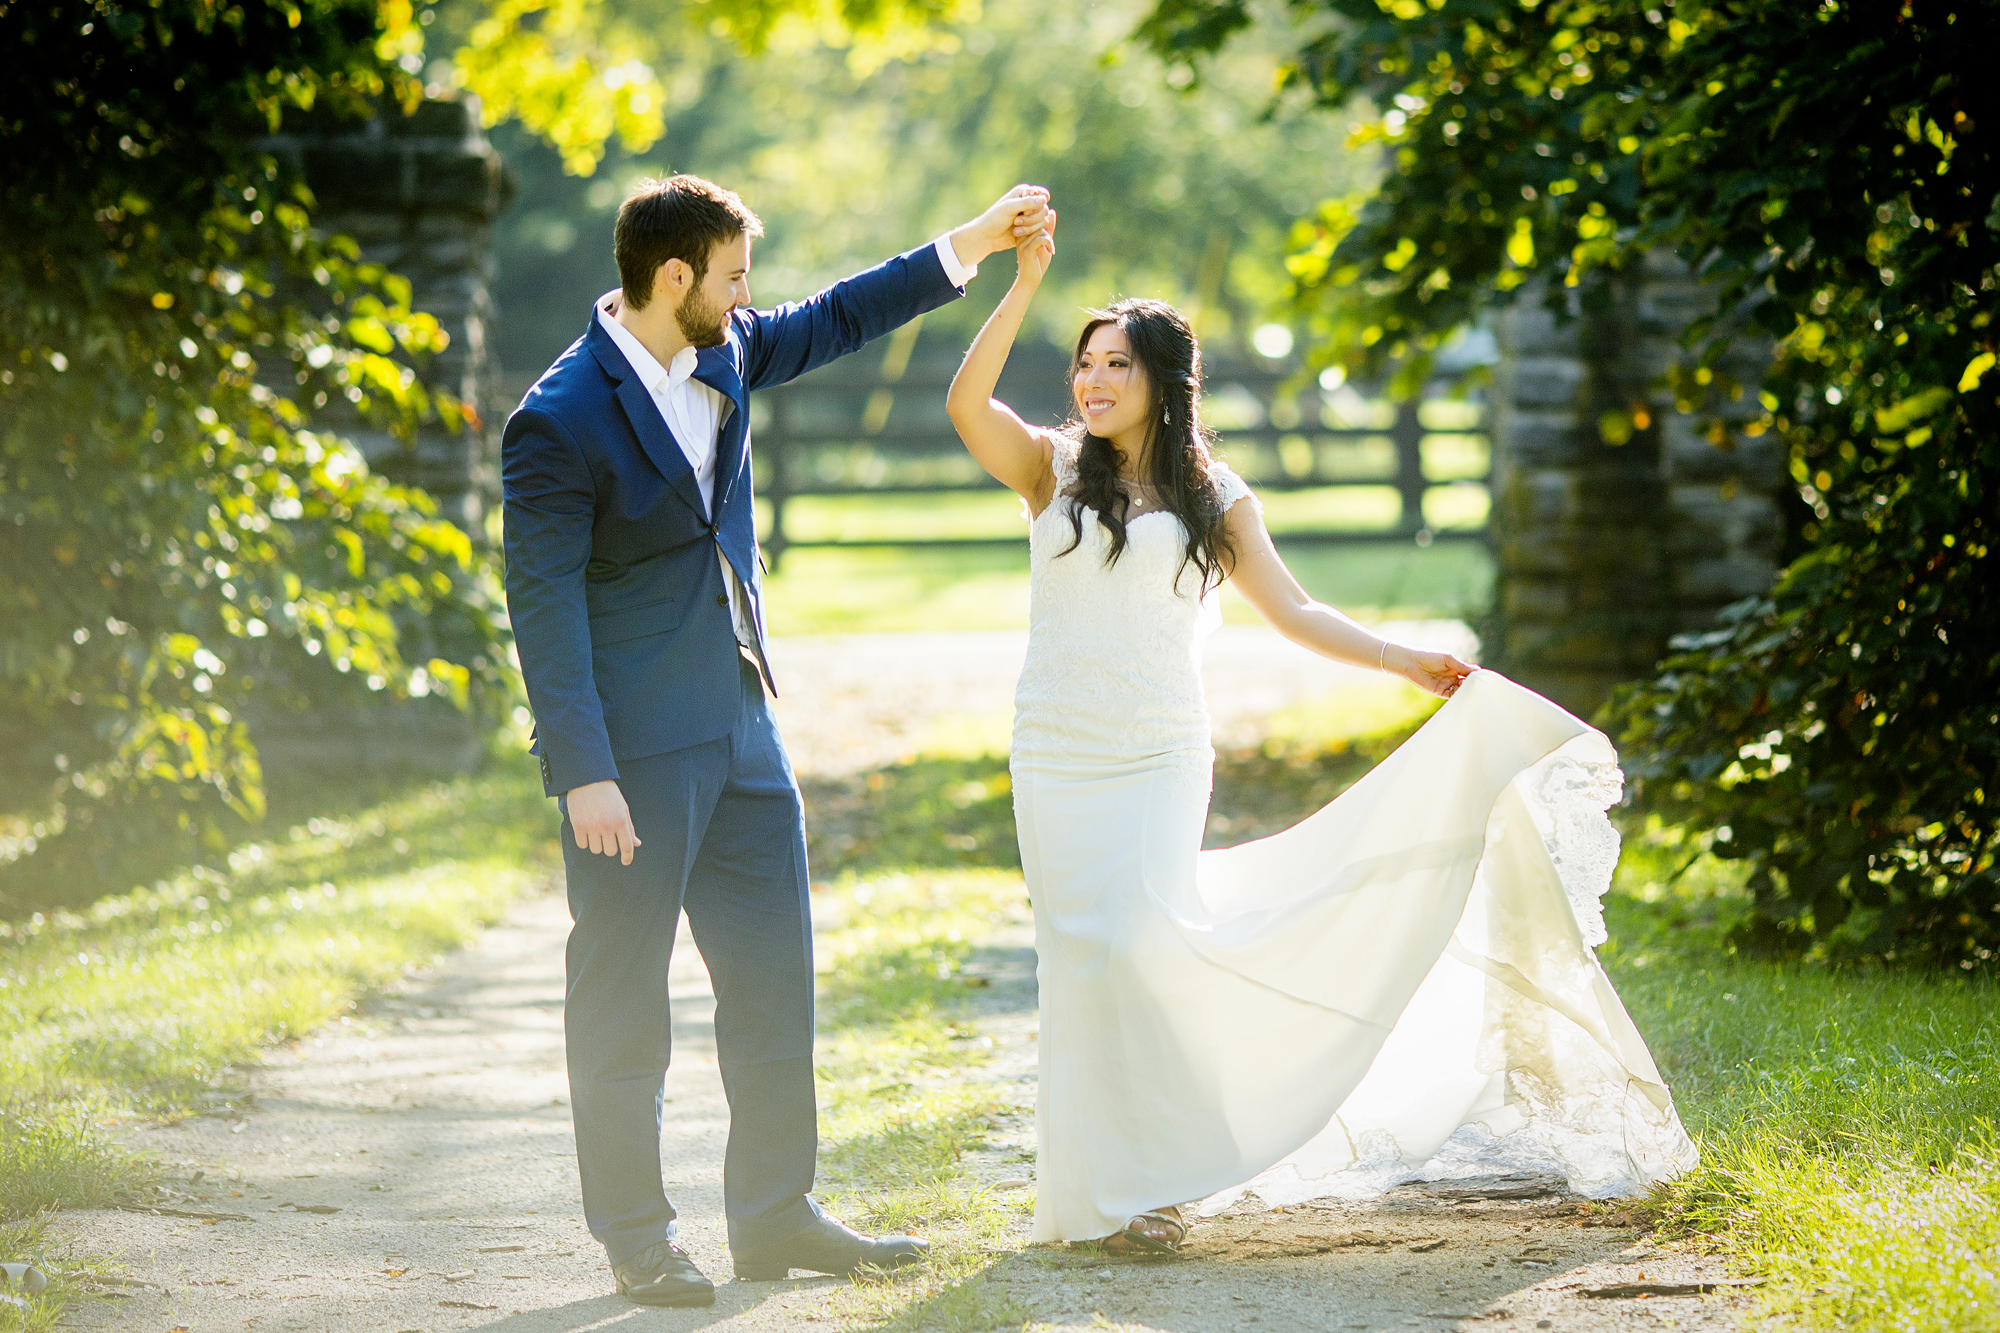 Seriously_Sabrina_Photography_Lexington_Kentucky_Horse_Park_Bride_Groom_Portraits_LynaJeff27.jpg